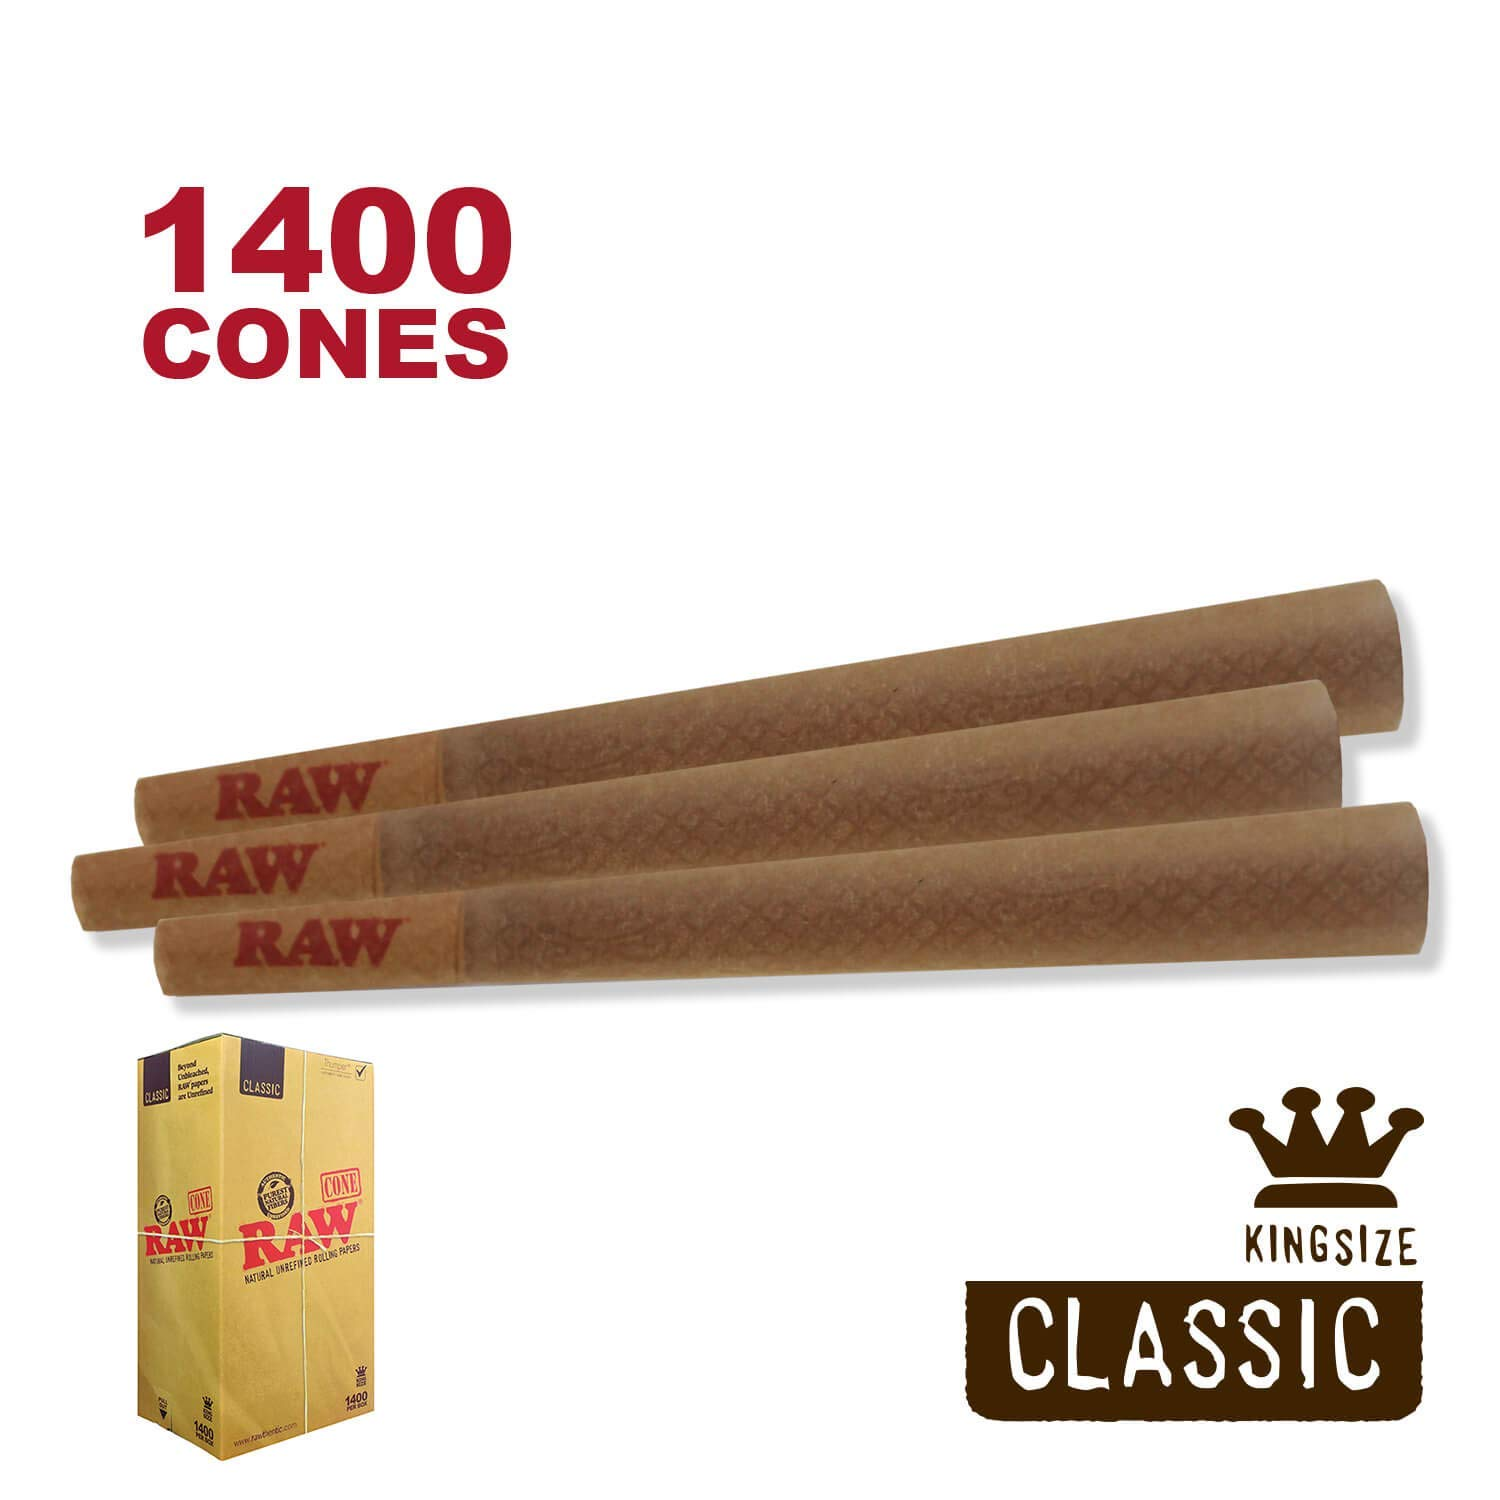 RAW 1400 Classic King Size Cones - W Gallery Scoop Sticker - RAW Box - Pure Hemp 109mm Pre Rolled Cones - 26mm Filter Tips - Natural Brown Unbleached Unrefined Rolling Papers - Bulk Pack Bundle by W Gallery